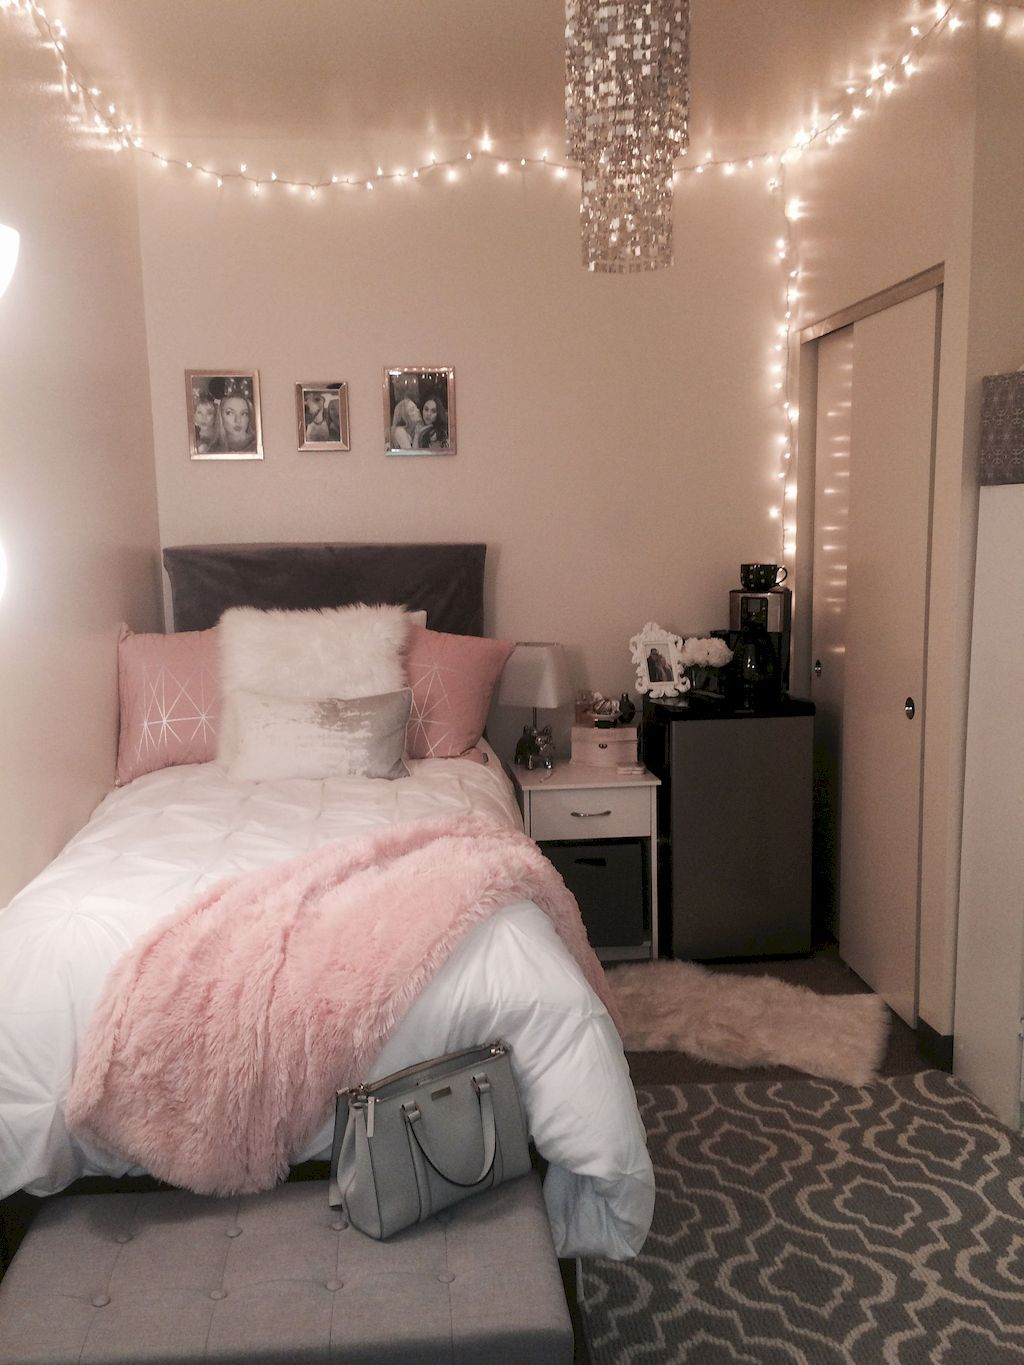 Cool 65 Clever Dorm Room Decorating Ideas on A Budget https ...